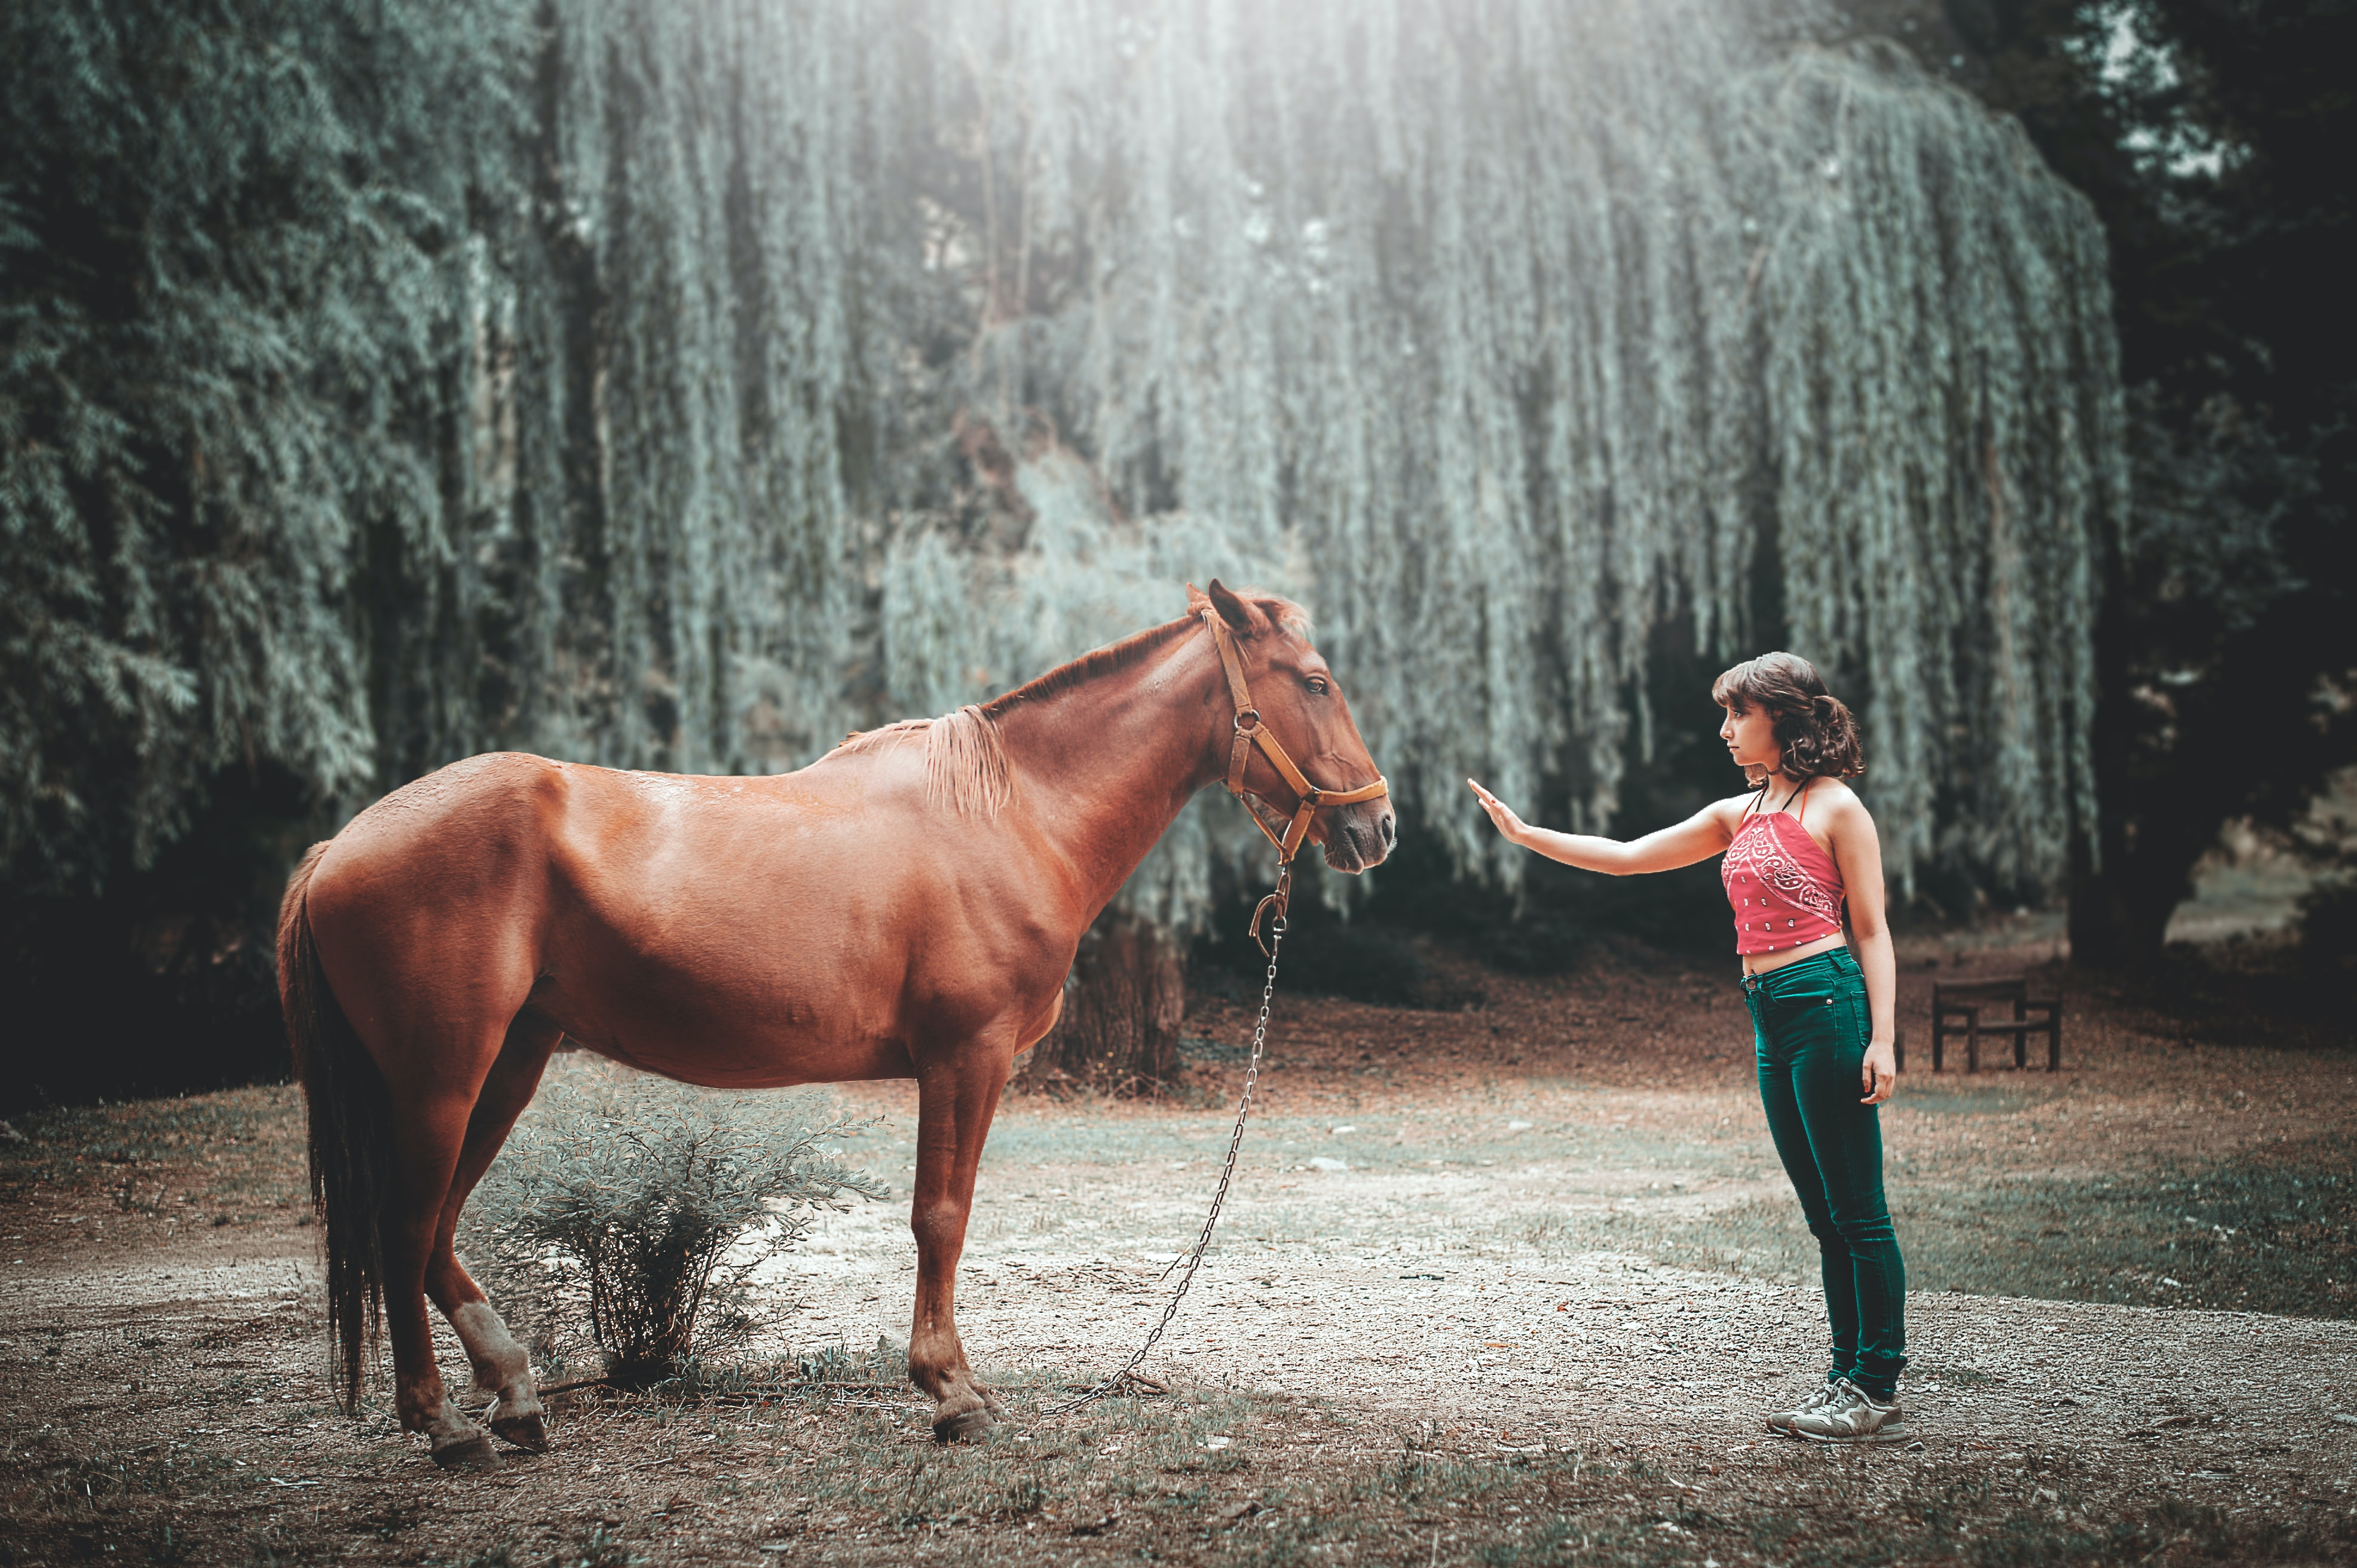 woman attempting to touch horse's face under tall tree during daytime